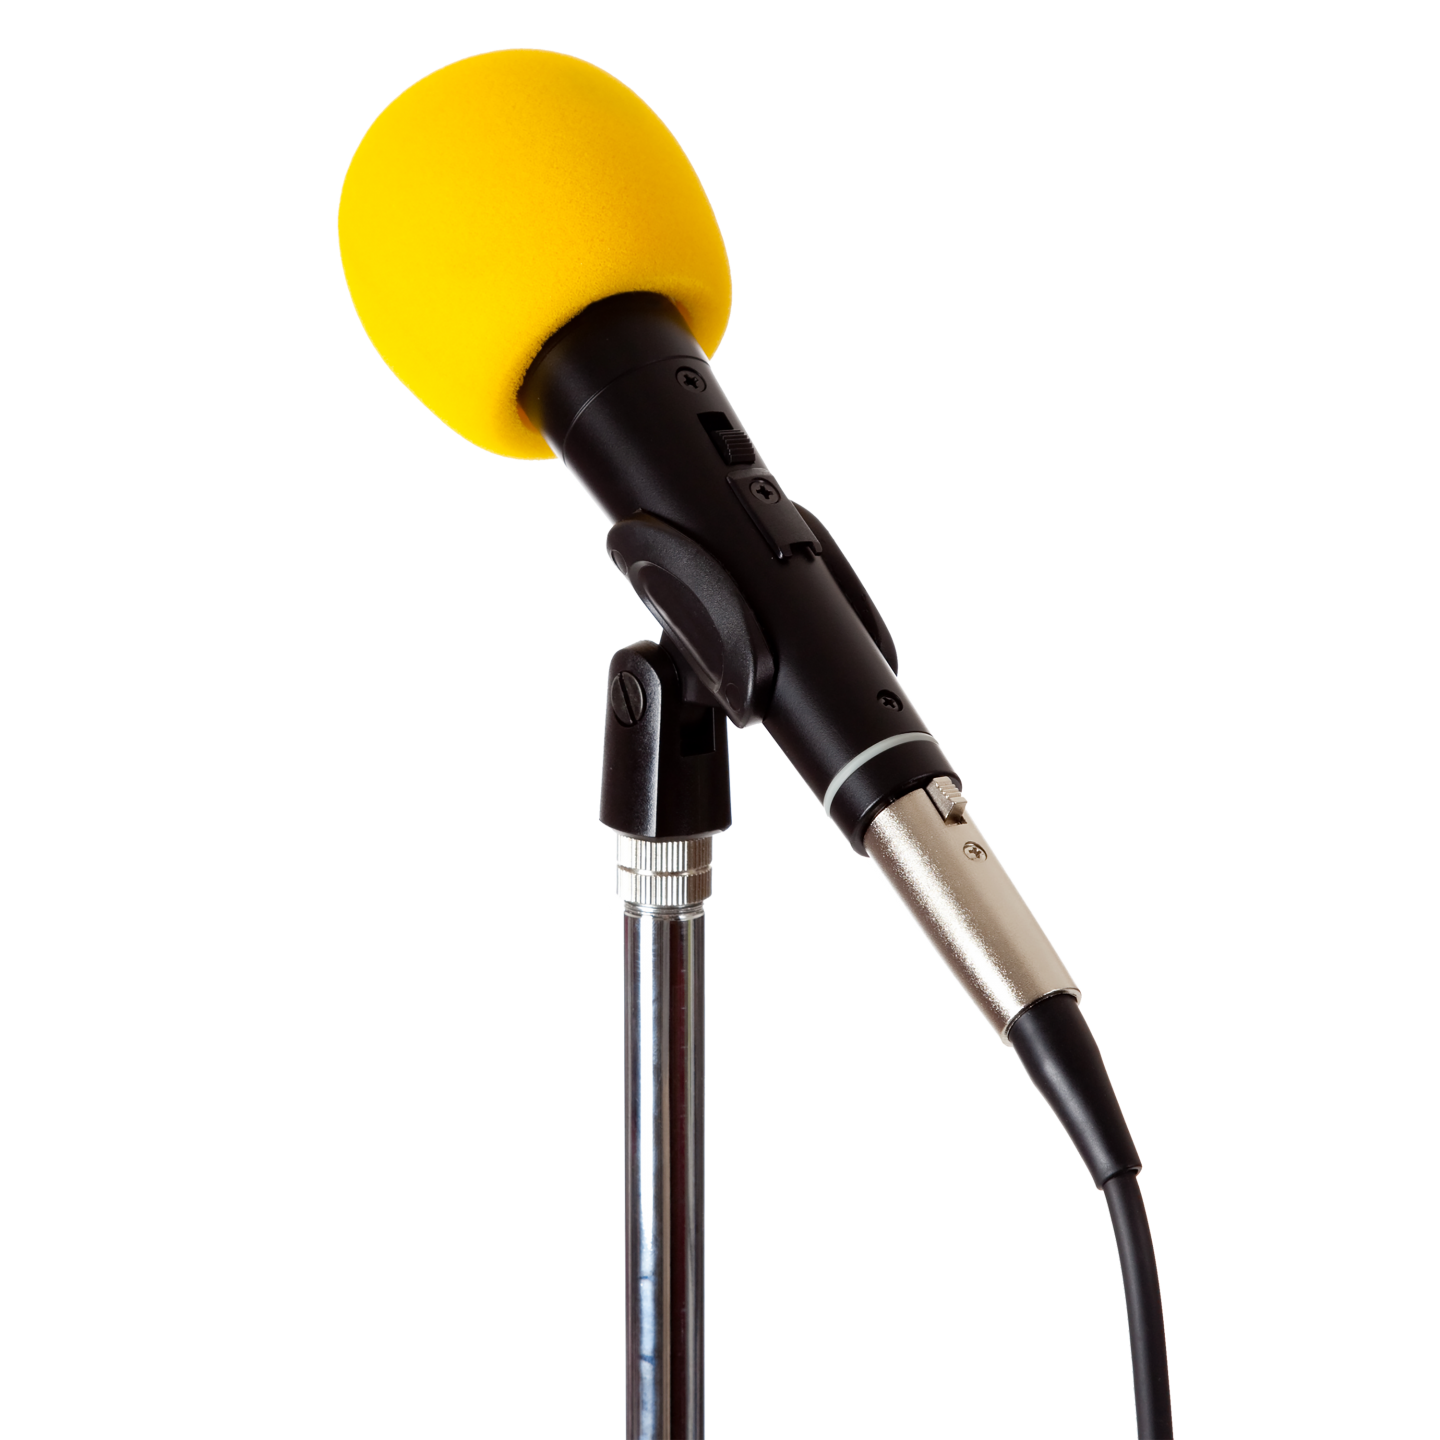 A yellow microphone